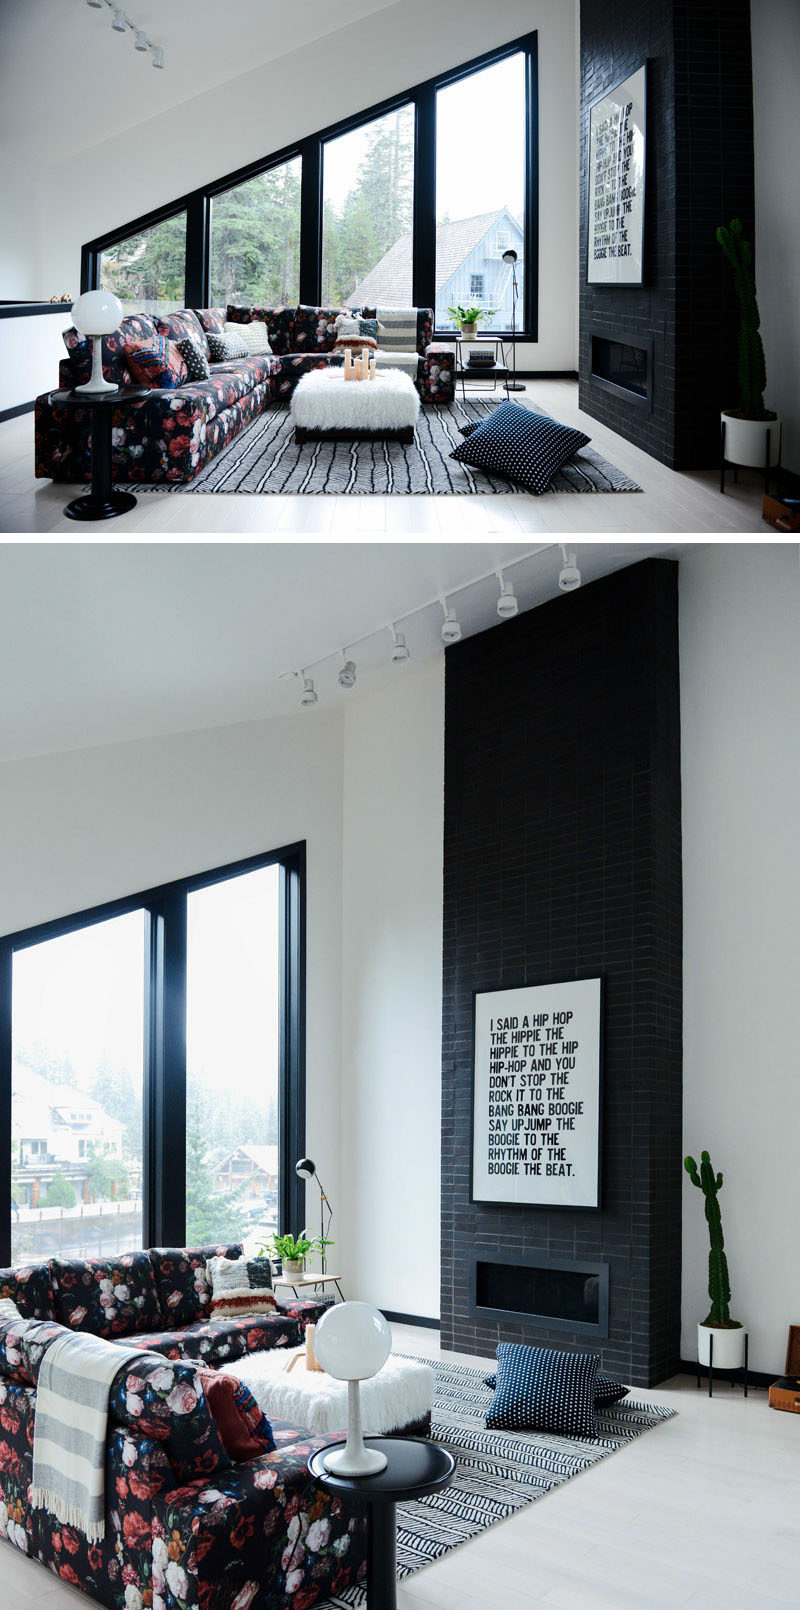 In this modern living room, the high ceilings make the space feel larger, while the angled windows allow plenty of natural light, and a black fireplace complements the black window frames. #LivingRoom #Windows #Fireplace